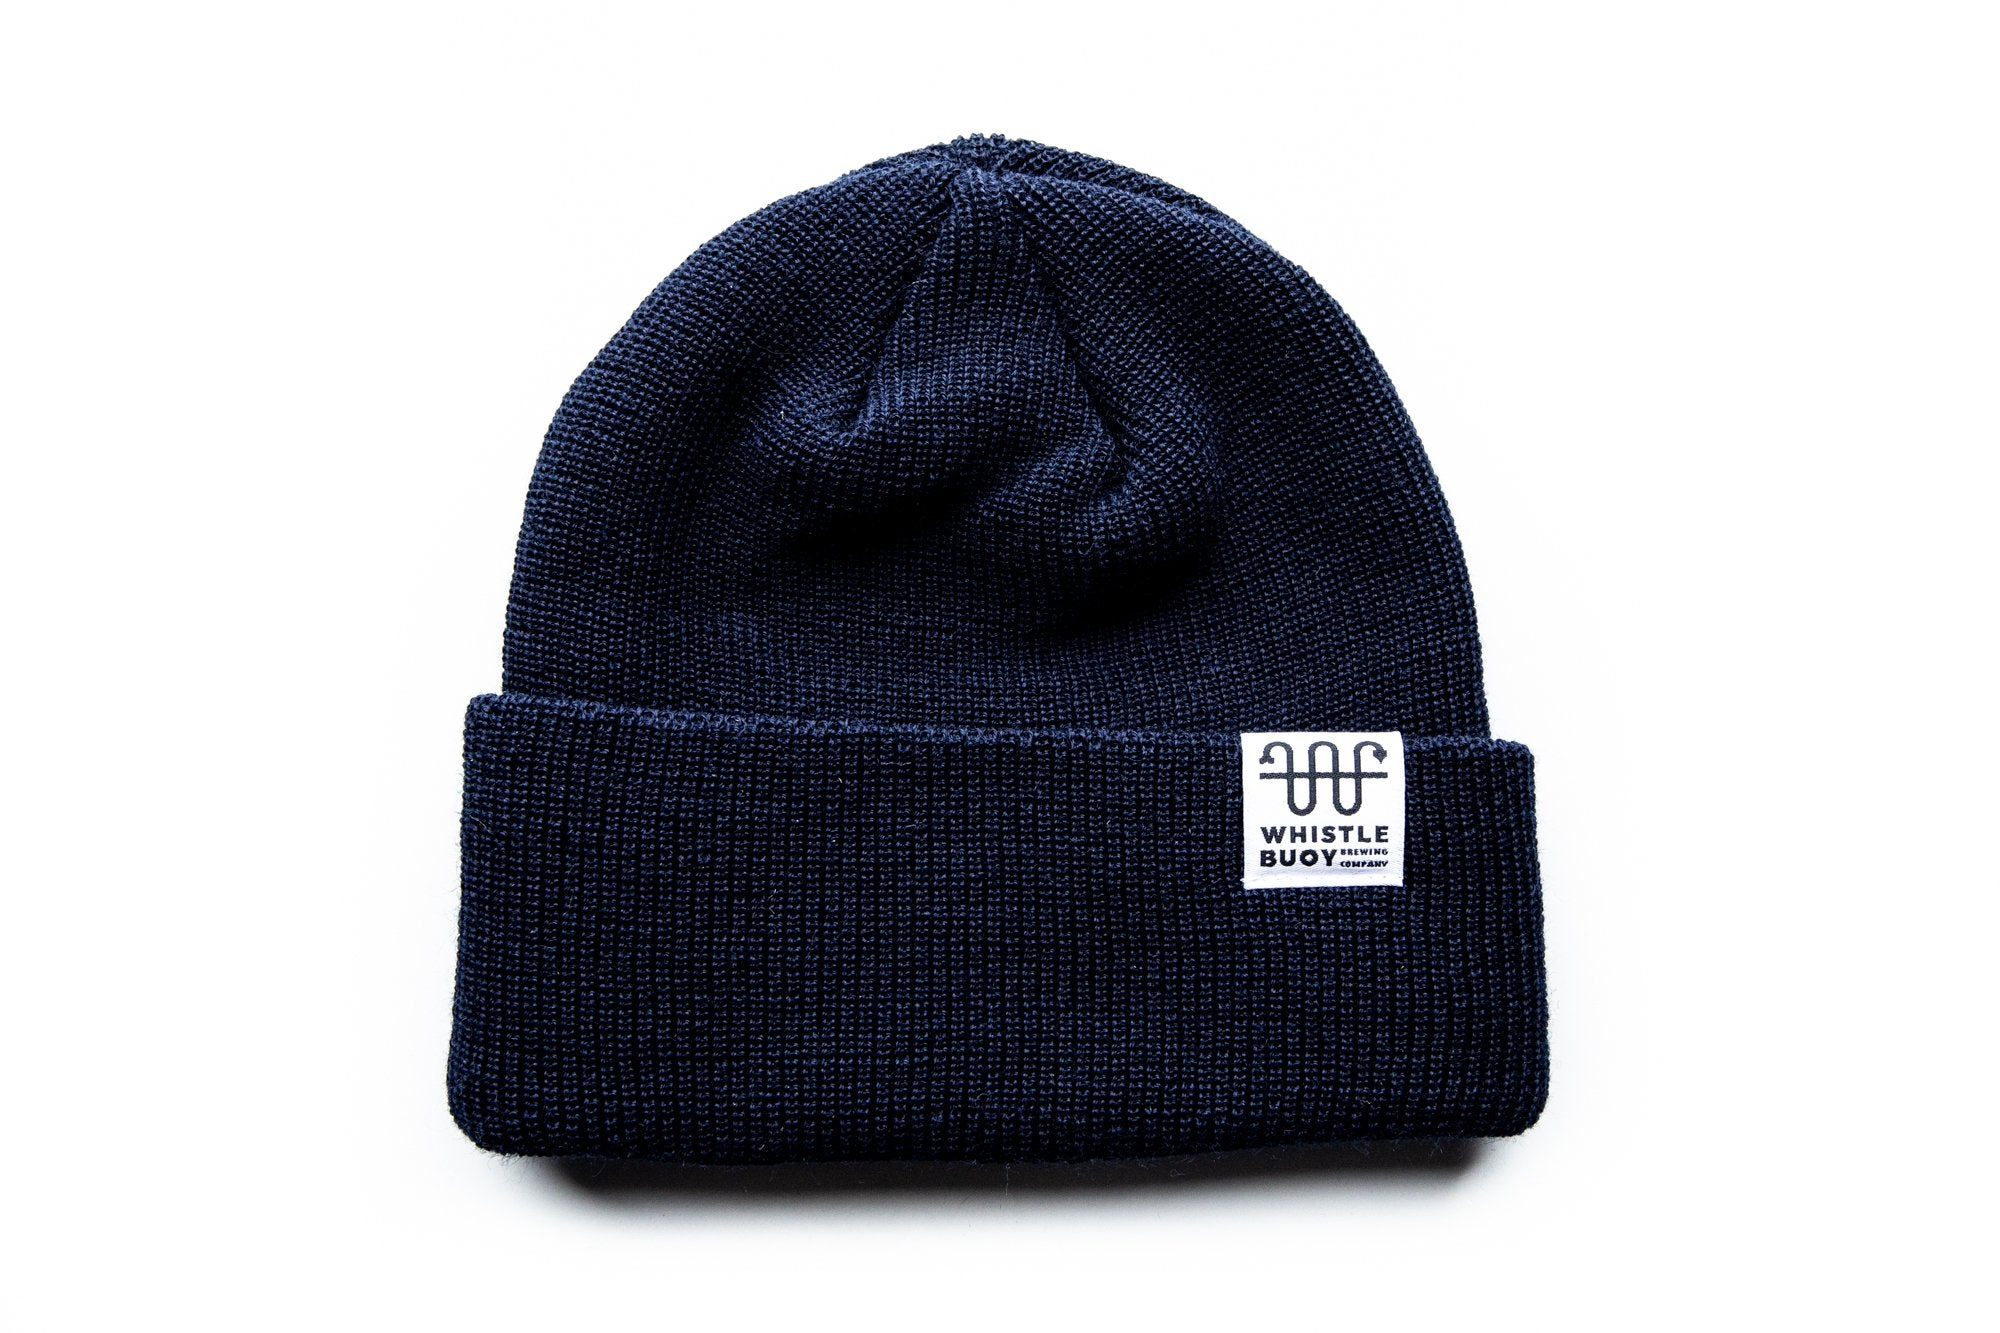 Whistle Buoy merino blend toque with white logo in blue